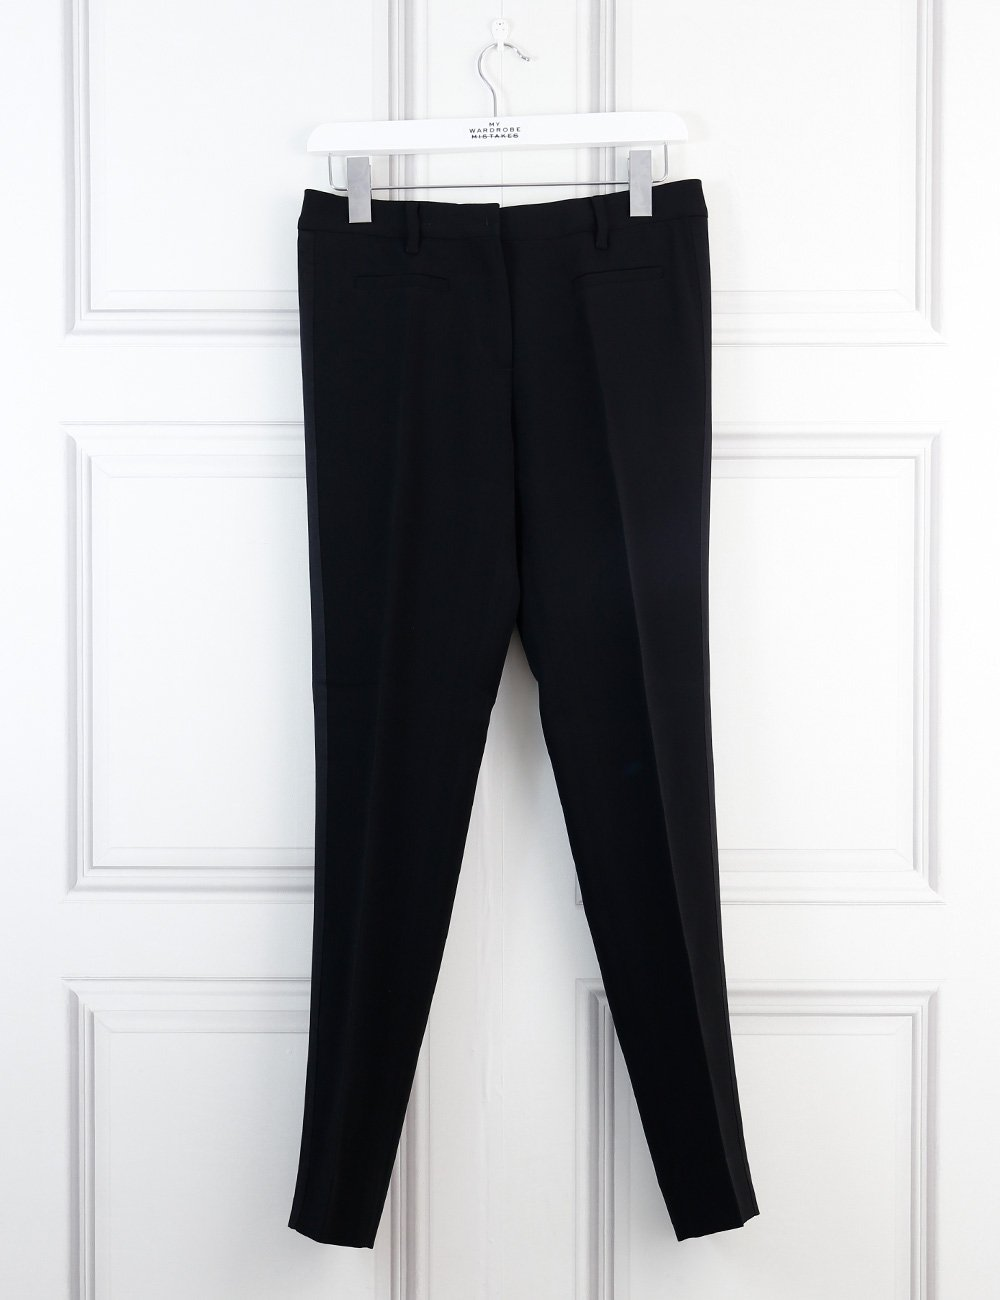 Miu Miu black tailored trousers with panels on the side 8Uk